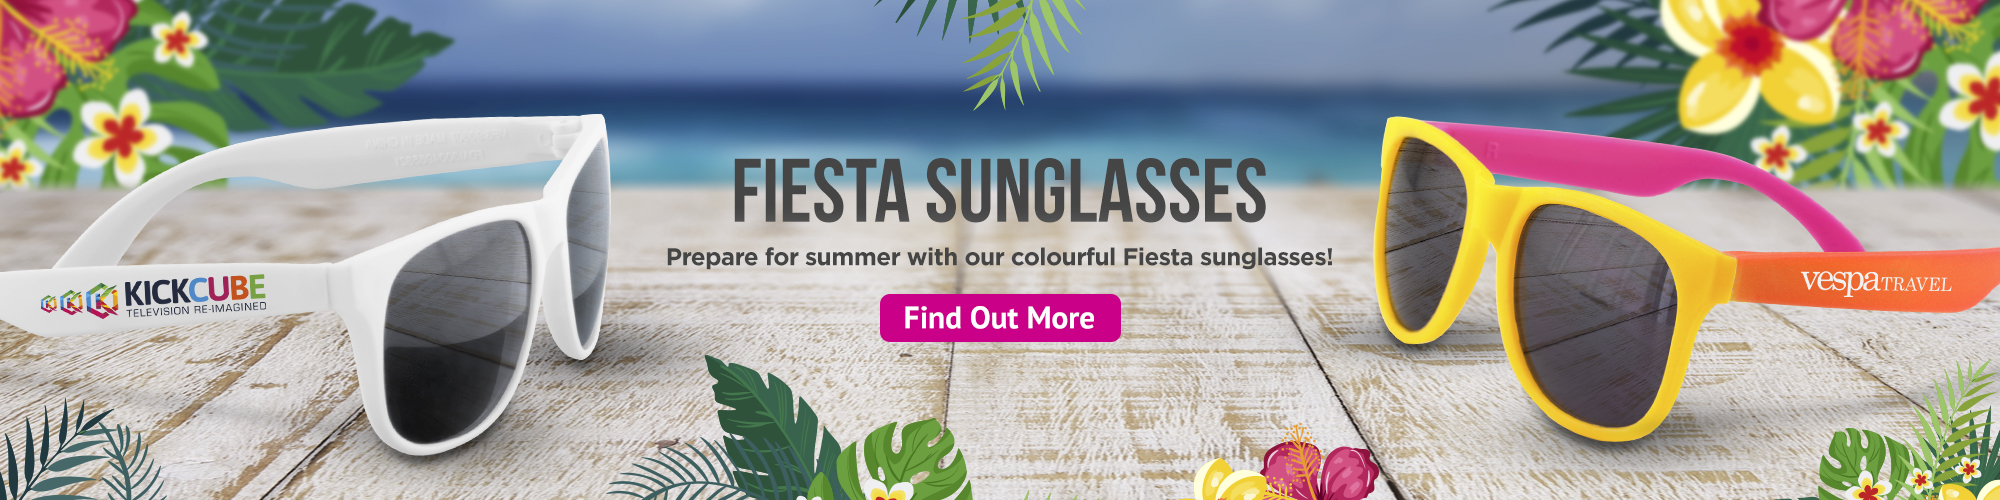 SUNGLASSES desktop banner